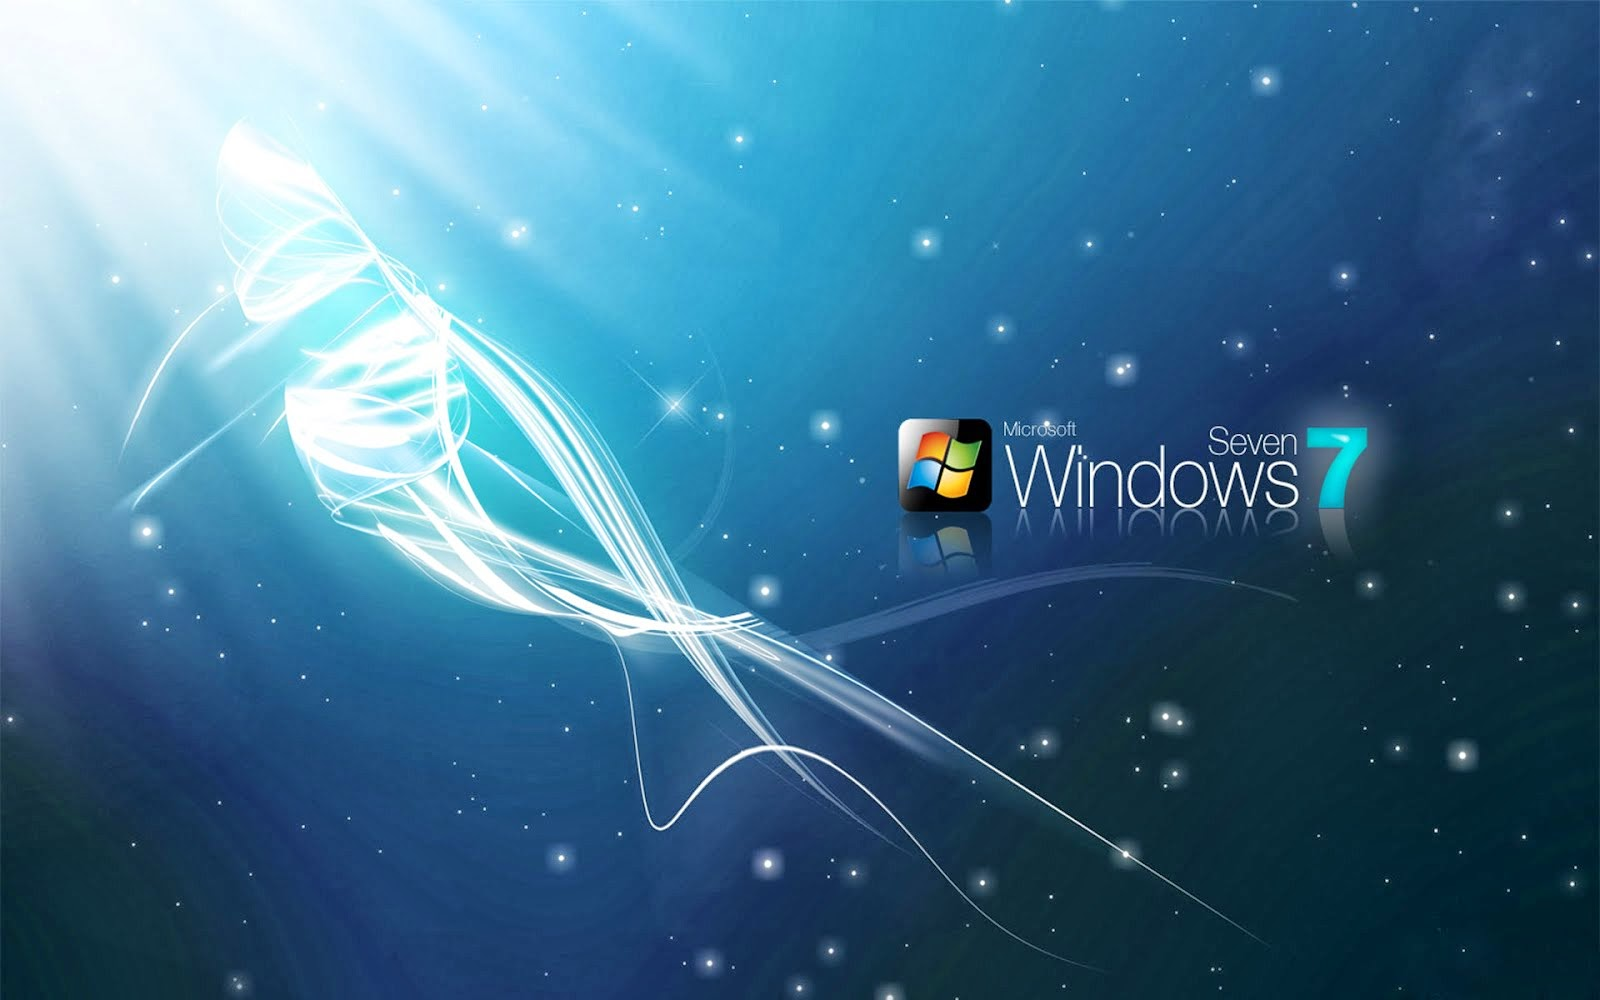 Windows 7 Animated Wallpaper Free | Wallpaper Animated